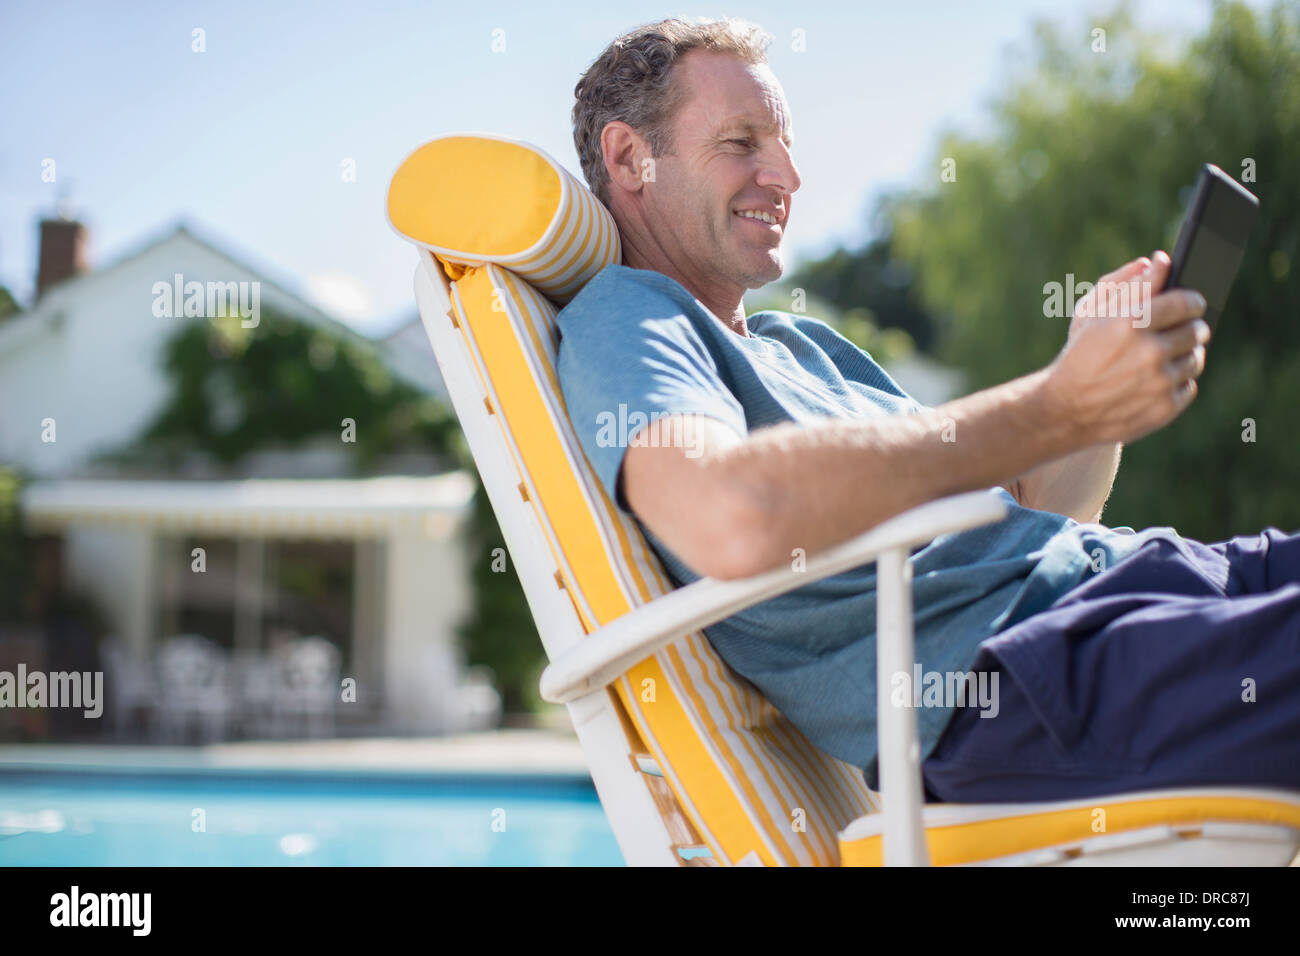 Man Reading In Lounge Chair At Poolside   Stock Image